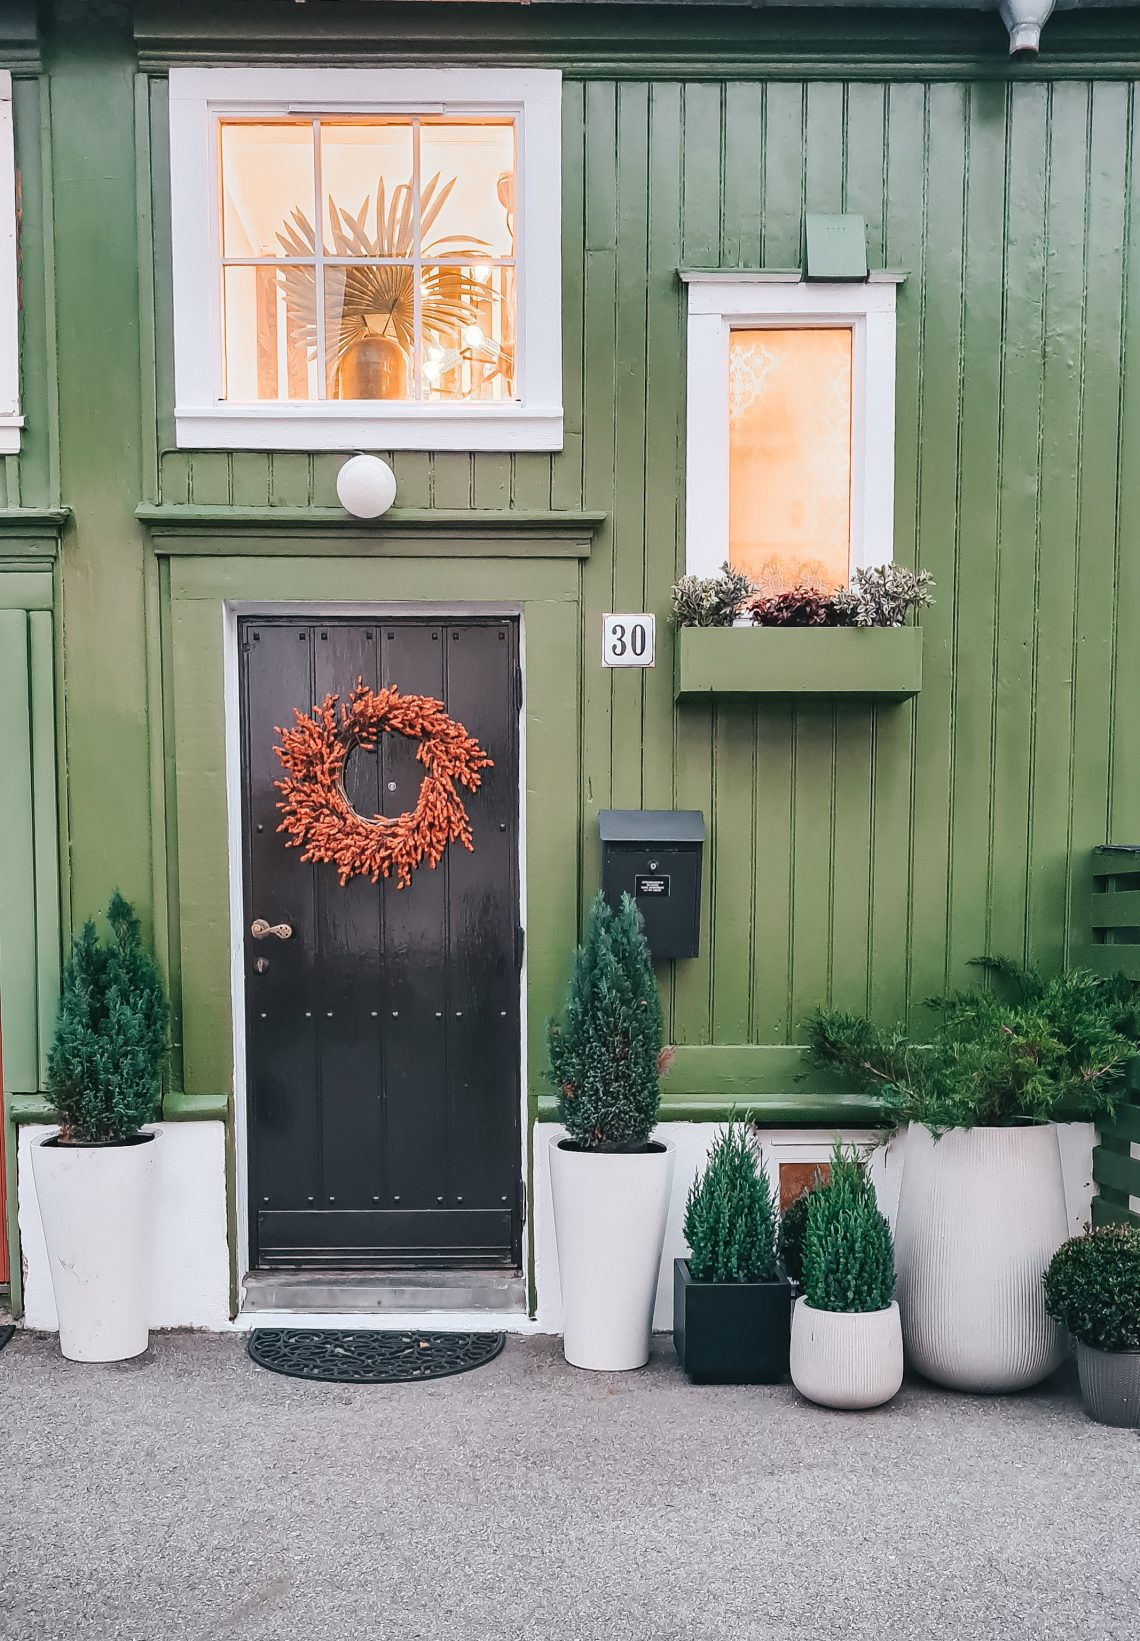 Green Home Exterior - A Gorgeous Norwegian Home Tour You'll Fall In Love With: The green exterior of a homely and gorgeous Scandinavian home. Painted a forest green with box planters below the windows and a black door. Home of Vibeke Sommerbak of Vib Interior #scandinavianinterior #scandinavianexteriorhouse #greenhouseexterior #greenhouseexteriorpaint